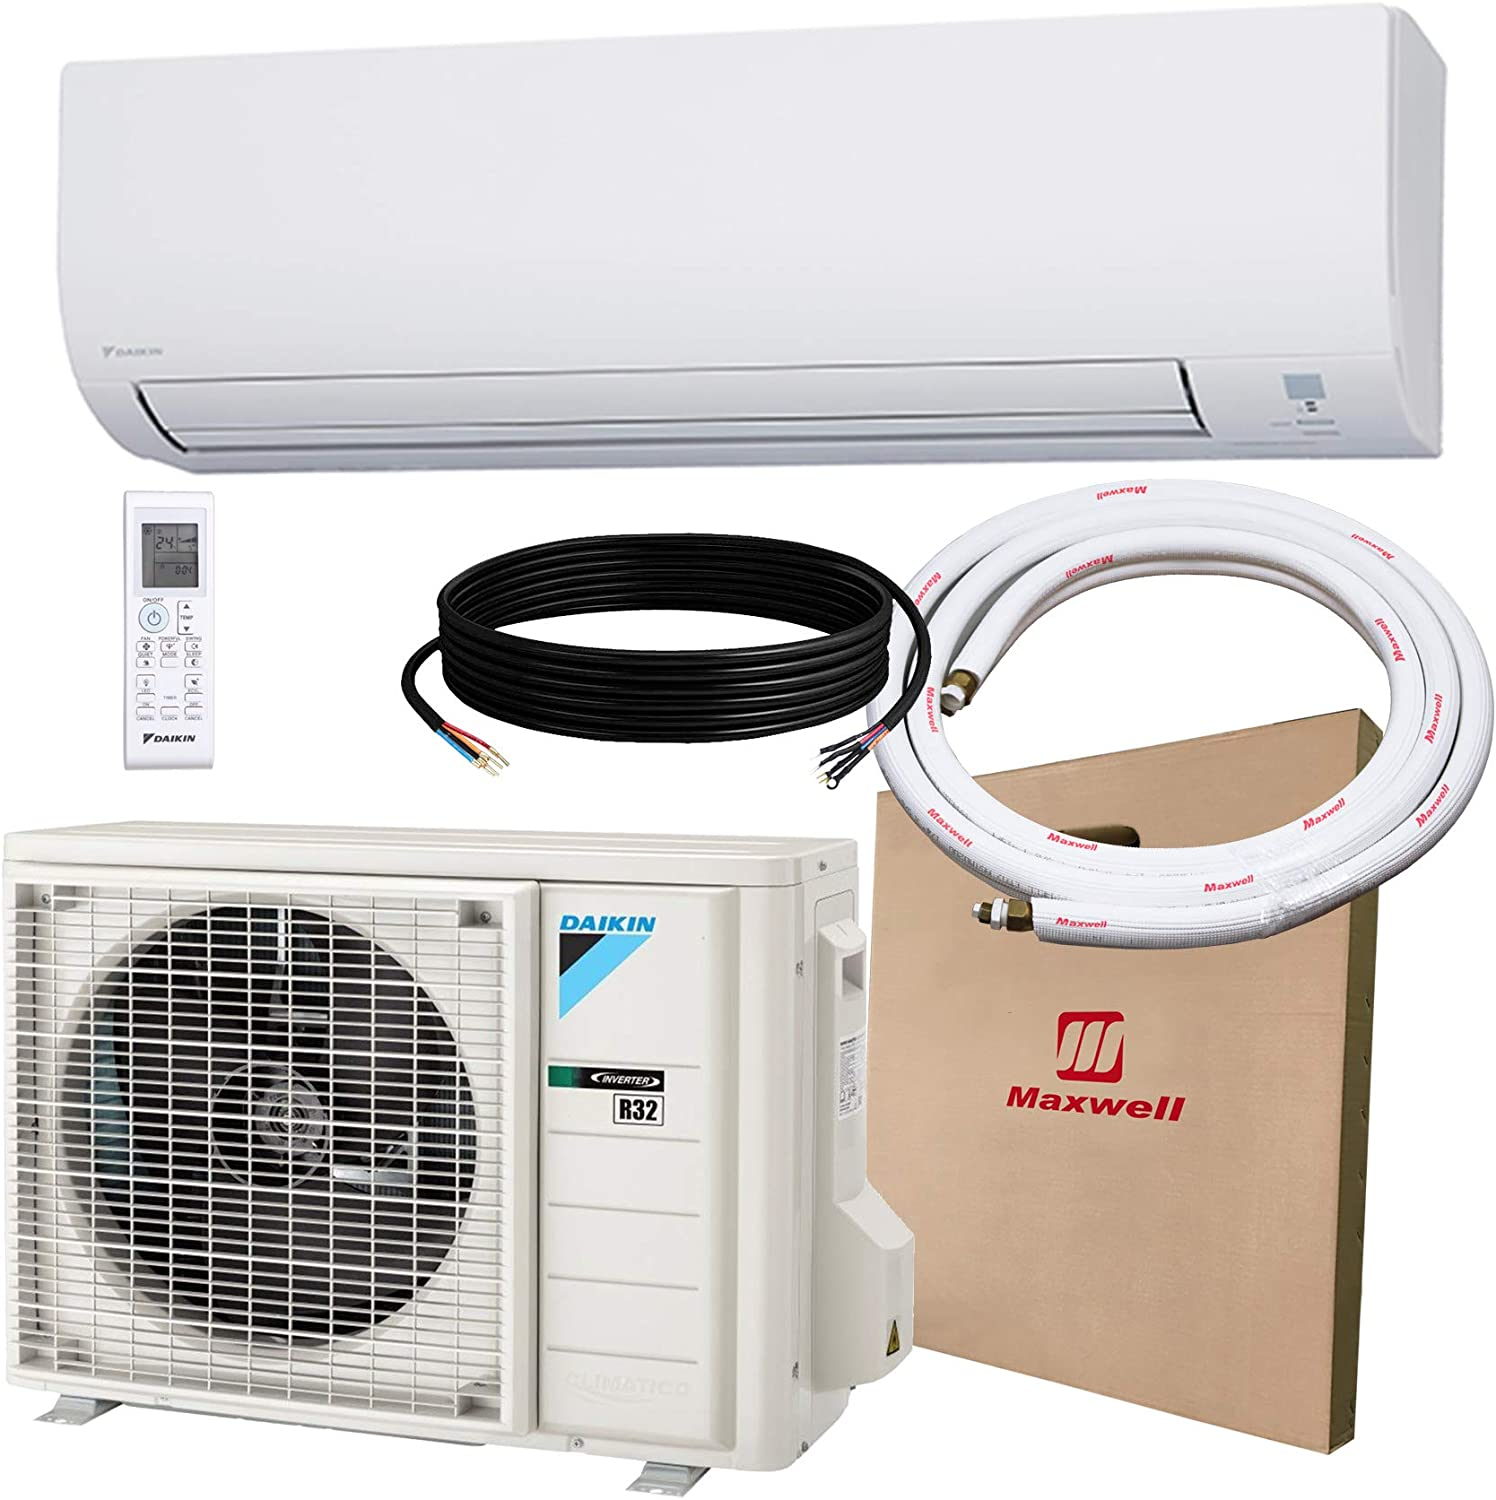 DAIKIN 9,000 BTU 19 SEER Wall-Mounted Ductless Mini-Split A/C Heat Pump System Maxwell 15-ft Installation Kit (230V) 12 Year Limited Warranty (9,000 BTU_208-230V)